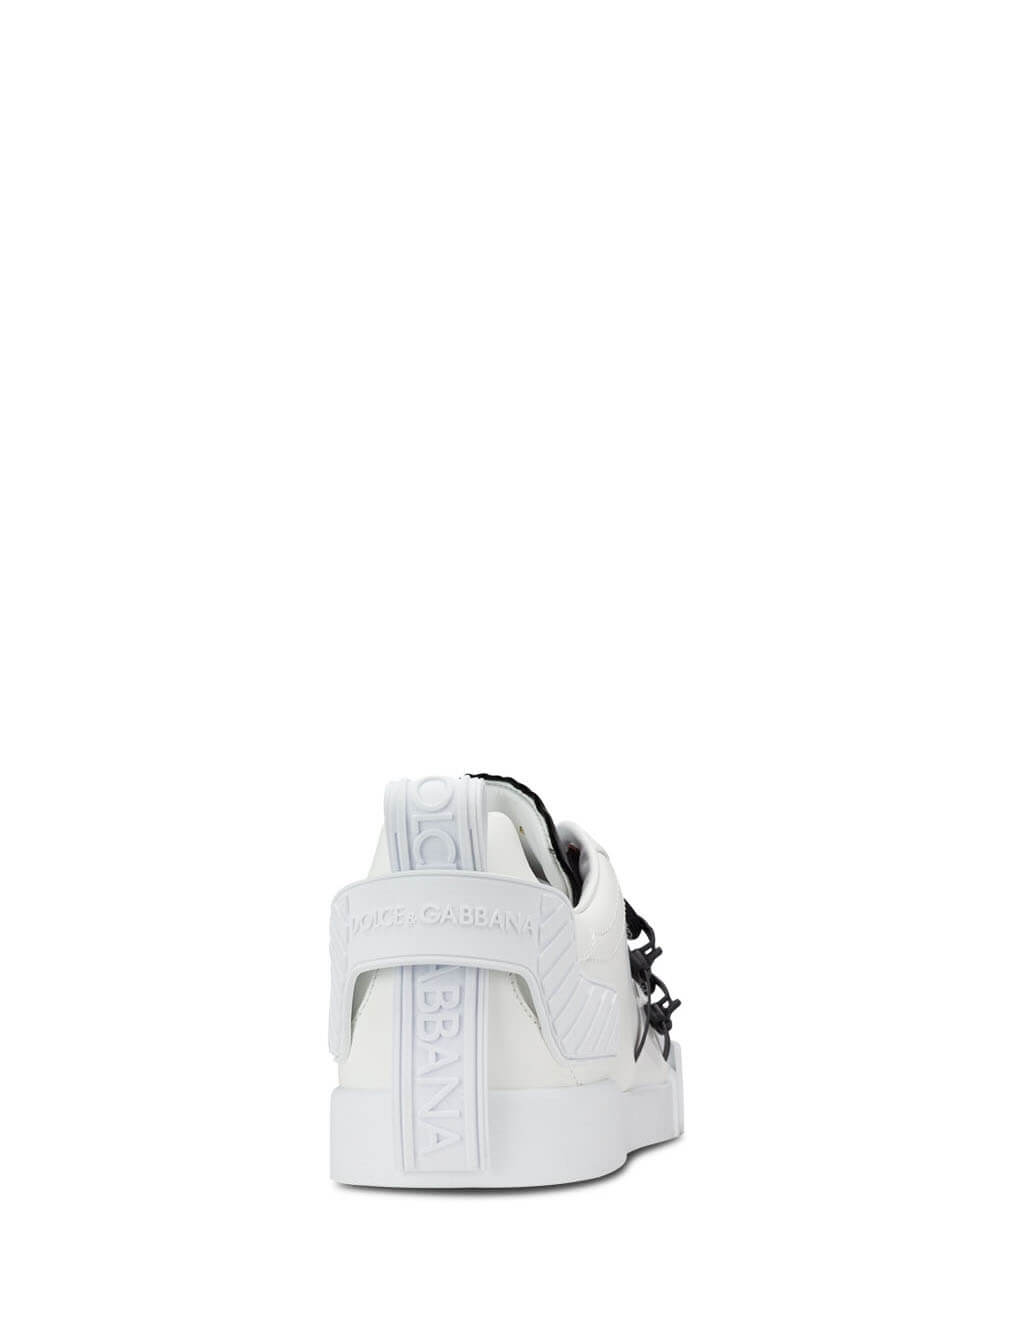 Dolce&Gabbana Men's Giulio Fashion White Portofino Sneakers CS1783AJ98689697